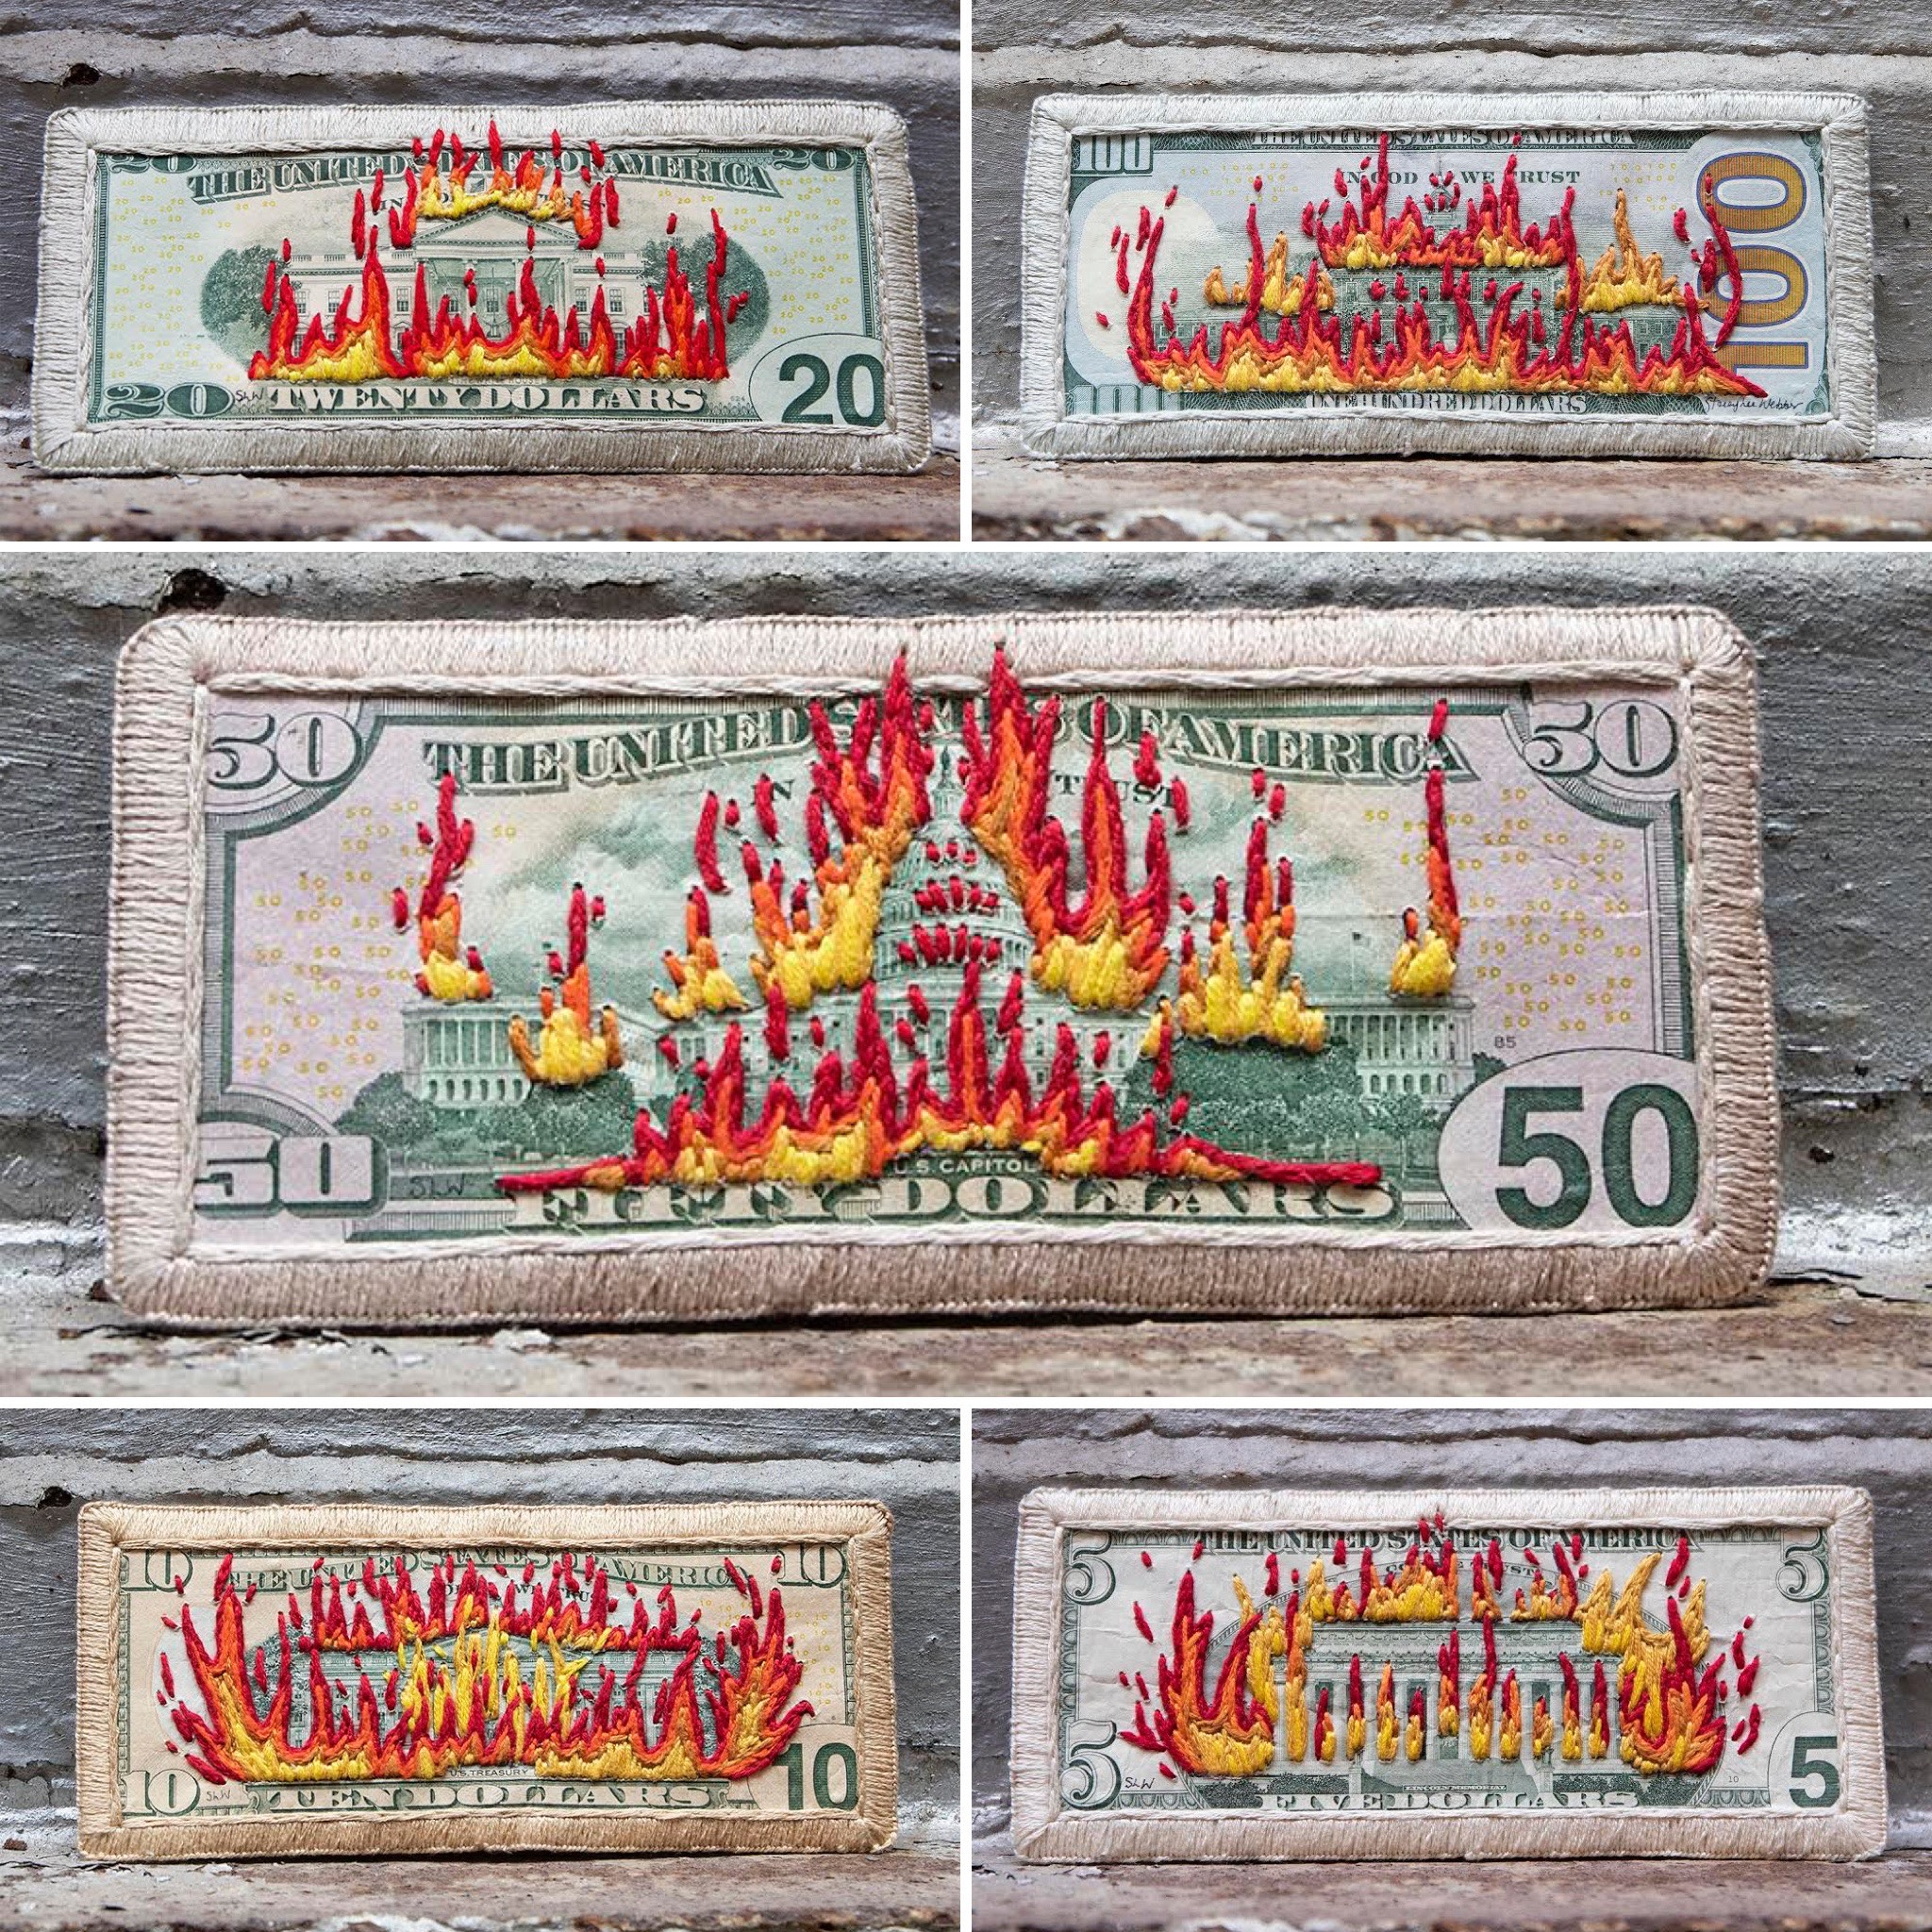 Subversively Embroidered Money and Penny Sculptures Question Historical Narratives